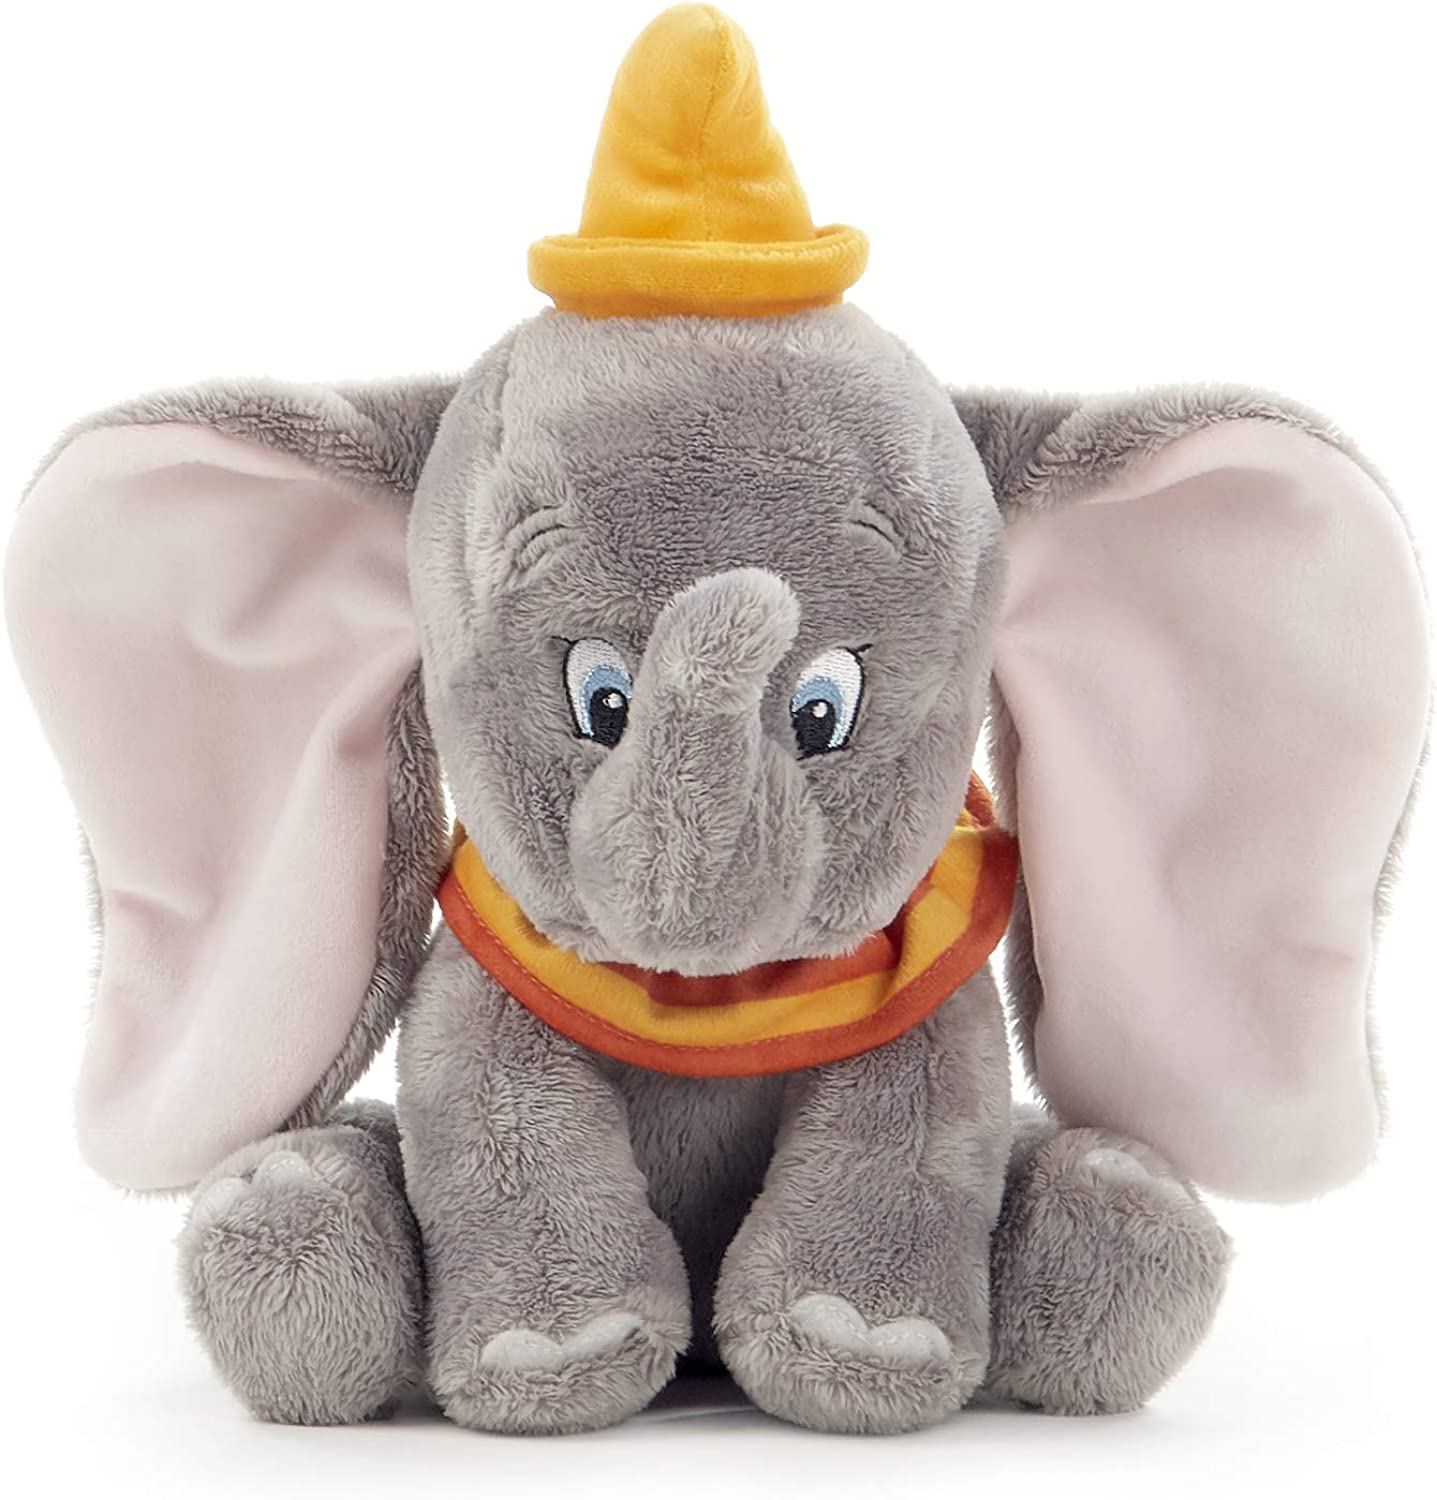 Official Disney Dumbo The Elephant 25cm Soft Plush Toy